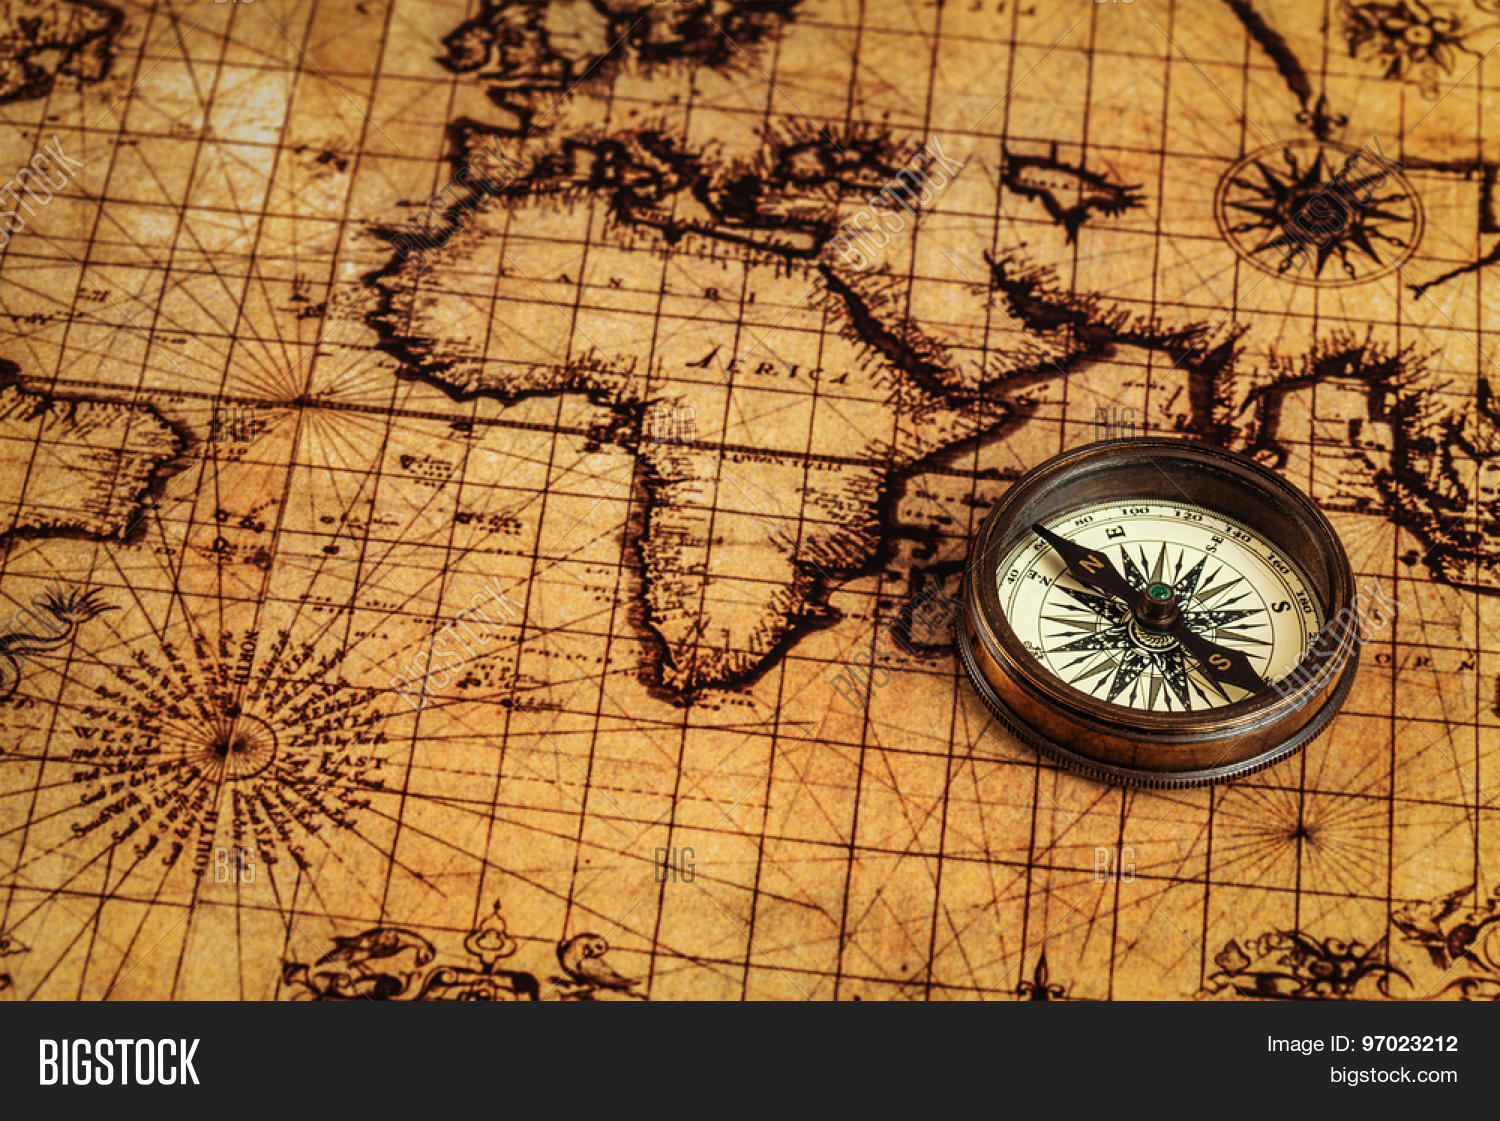 Travel geography image photo free trial bigstock travel geography navigation concept background old vintage retro compass on ancient world map gumiabroncs Images